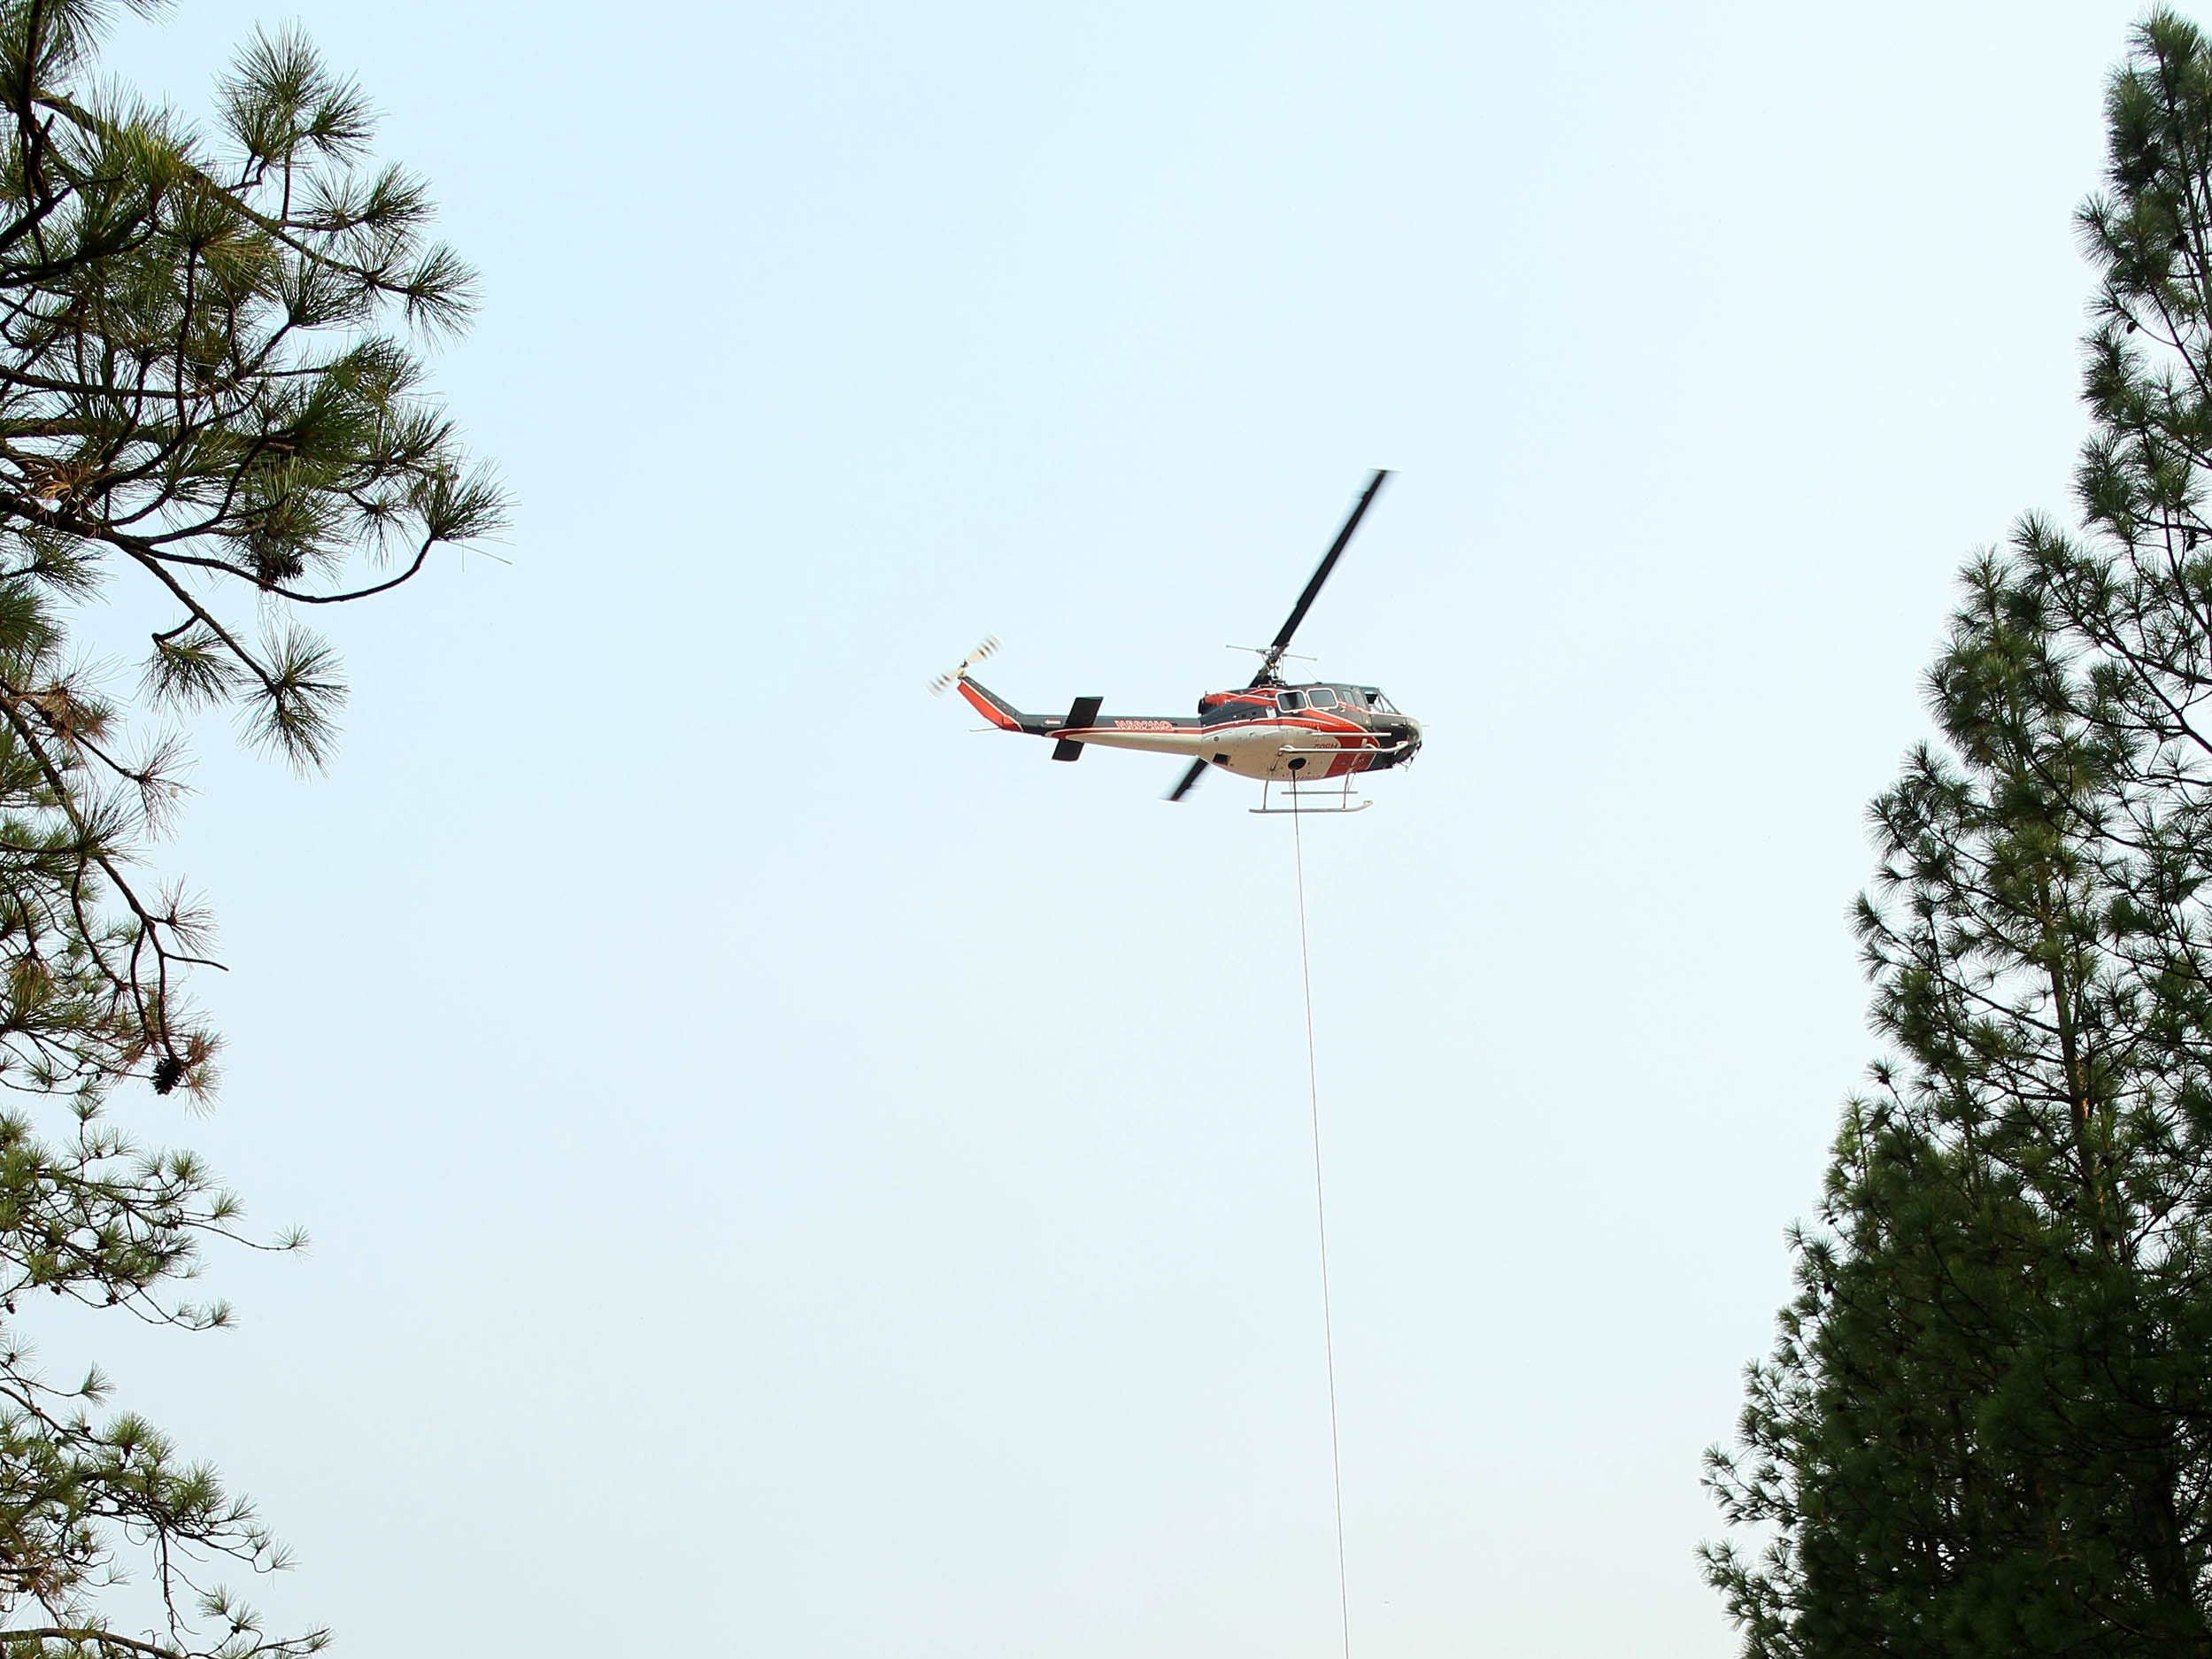 A helicopter hoist up a supply net Saturday, Aug. 18, 2018 from the boat ramp at Hirz Bay to resupply fire crews in a remote area of the Hirz Fire. (Special to the Record Searchlight/Hung T. Vu)